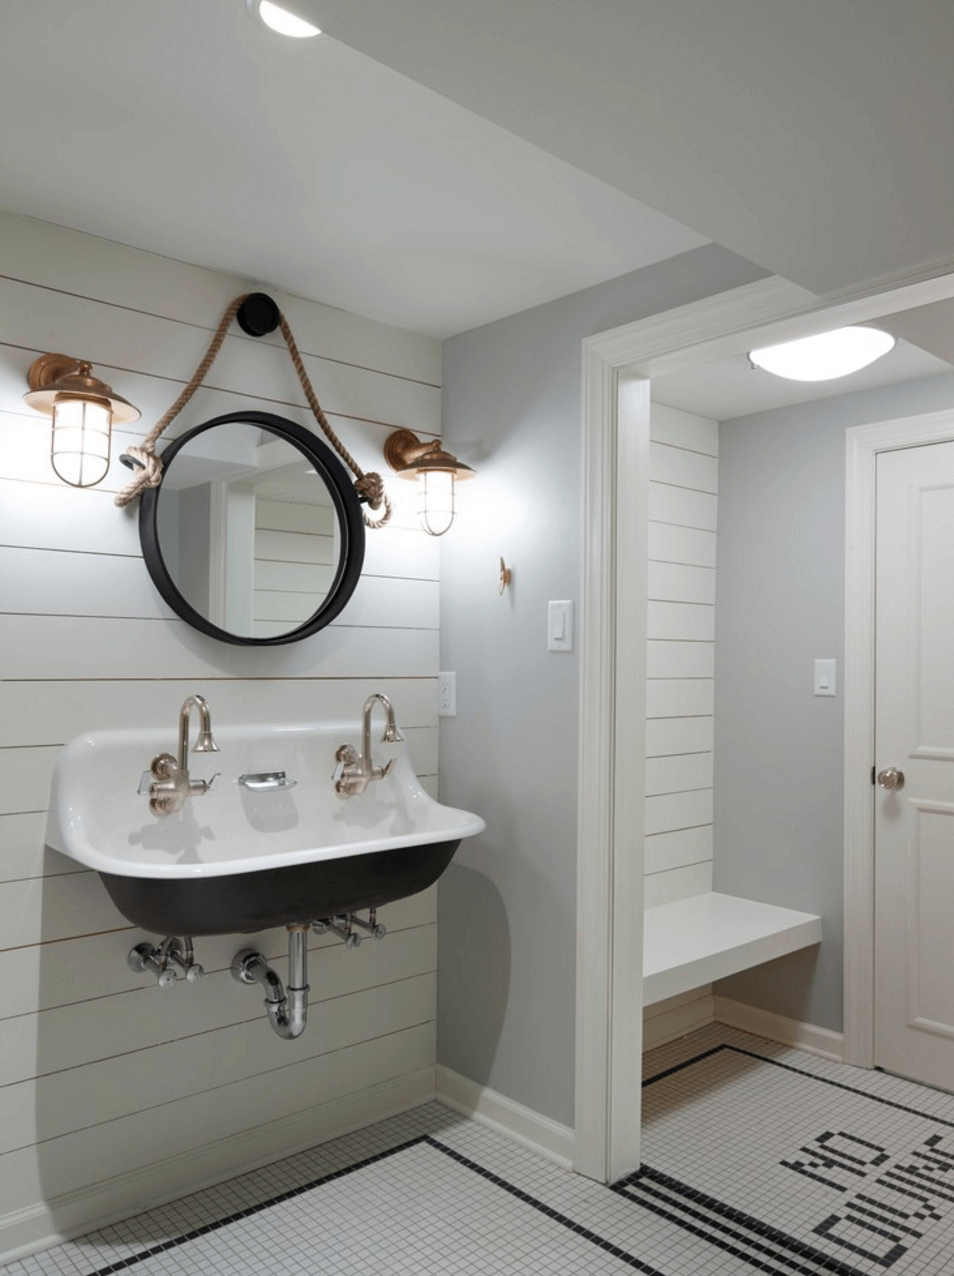 Bathroom Wall Mirrors 38 Mirror Ideas To Reflect Your Style Freshome Tankpvx